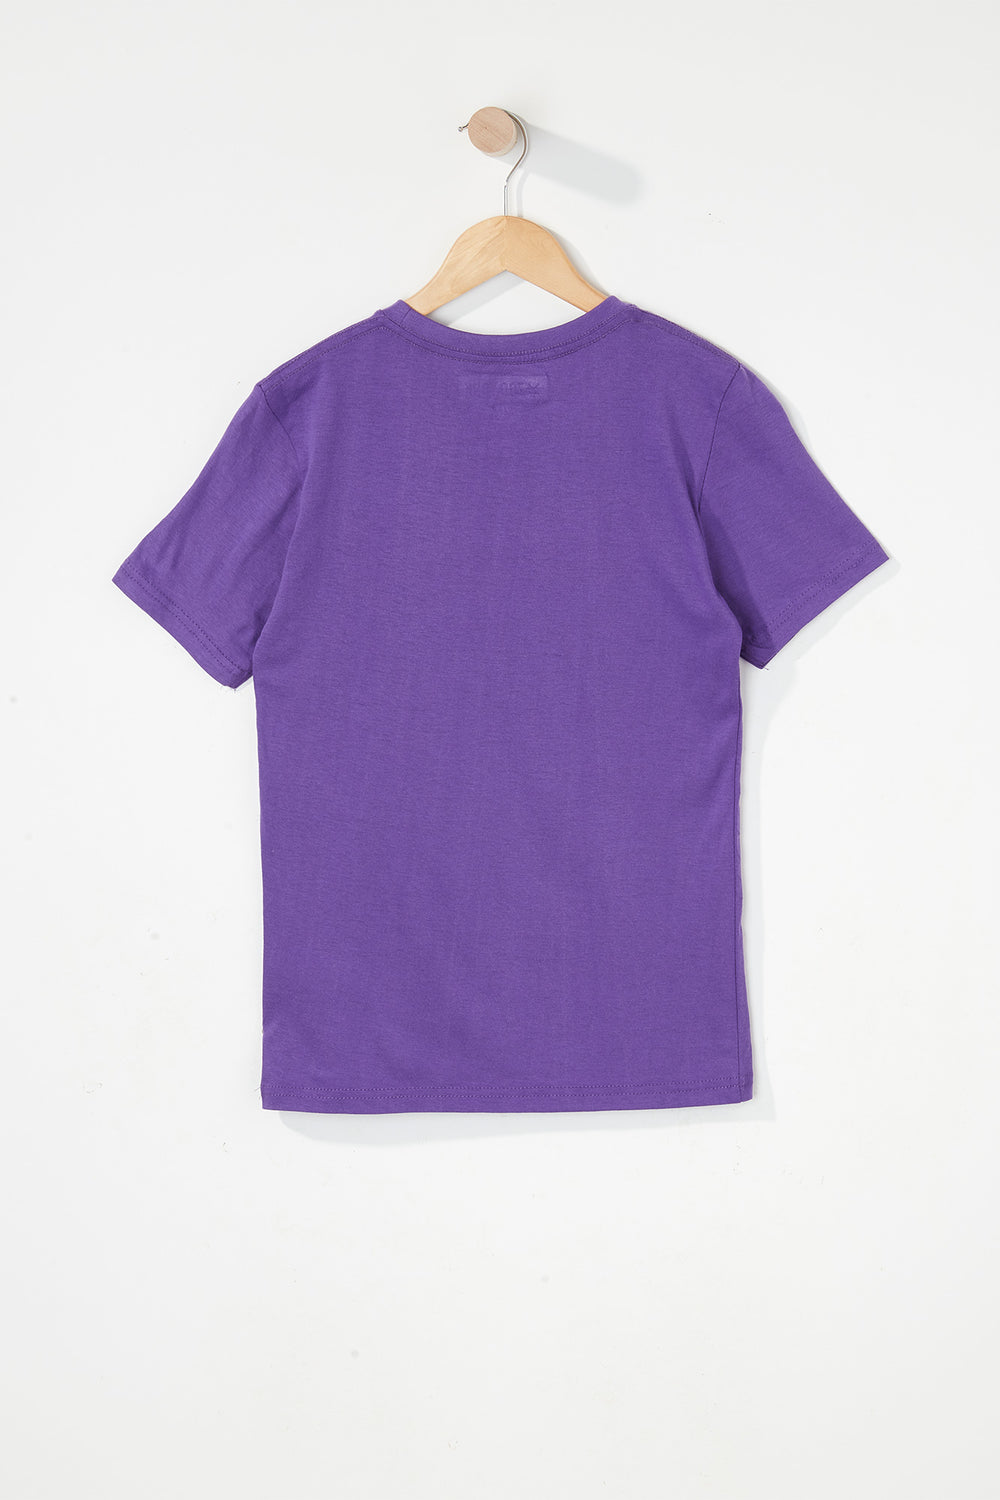 Zoo York Boys Classic Logo T-Shirt Purple